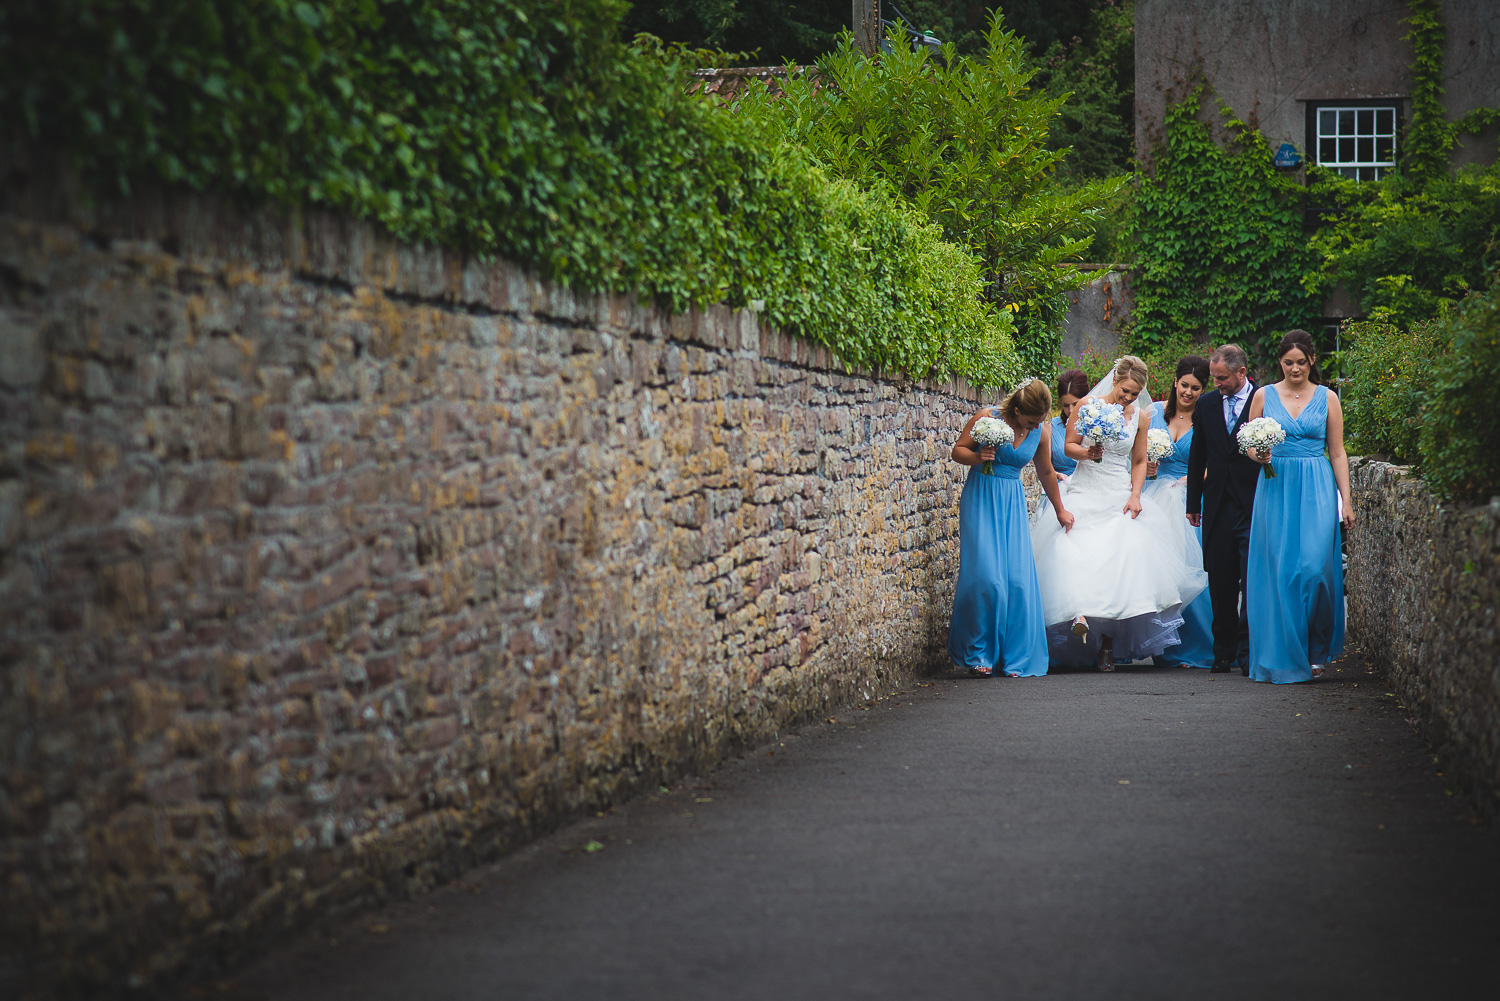 portishead-wedding-photographer-5.jpg